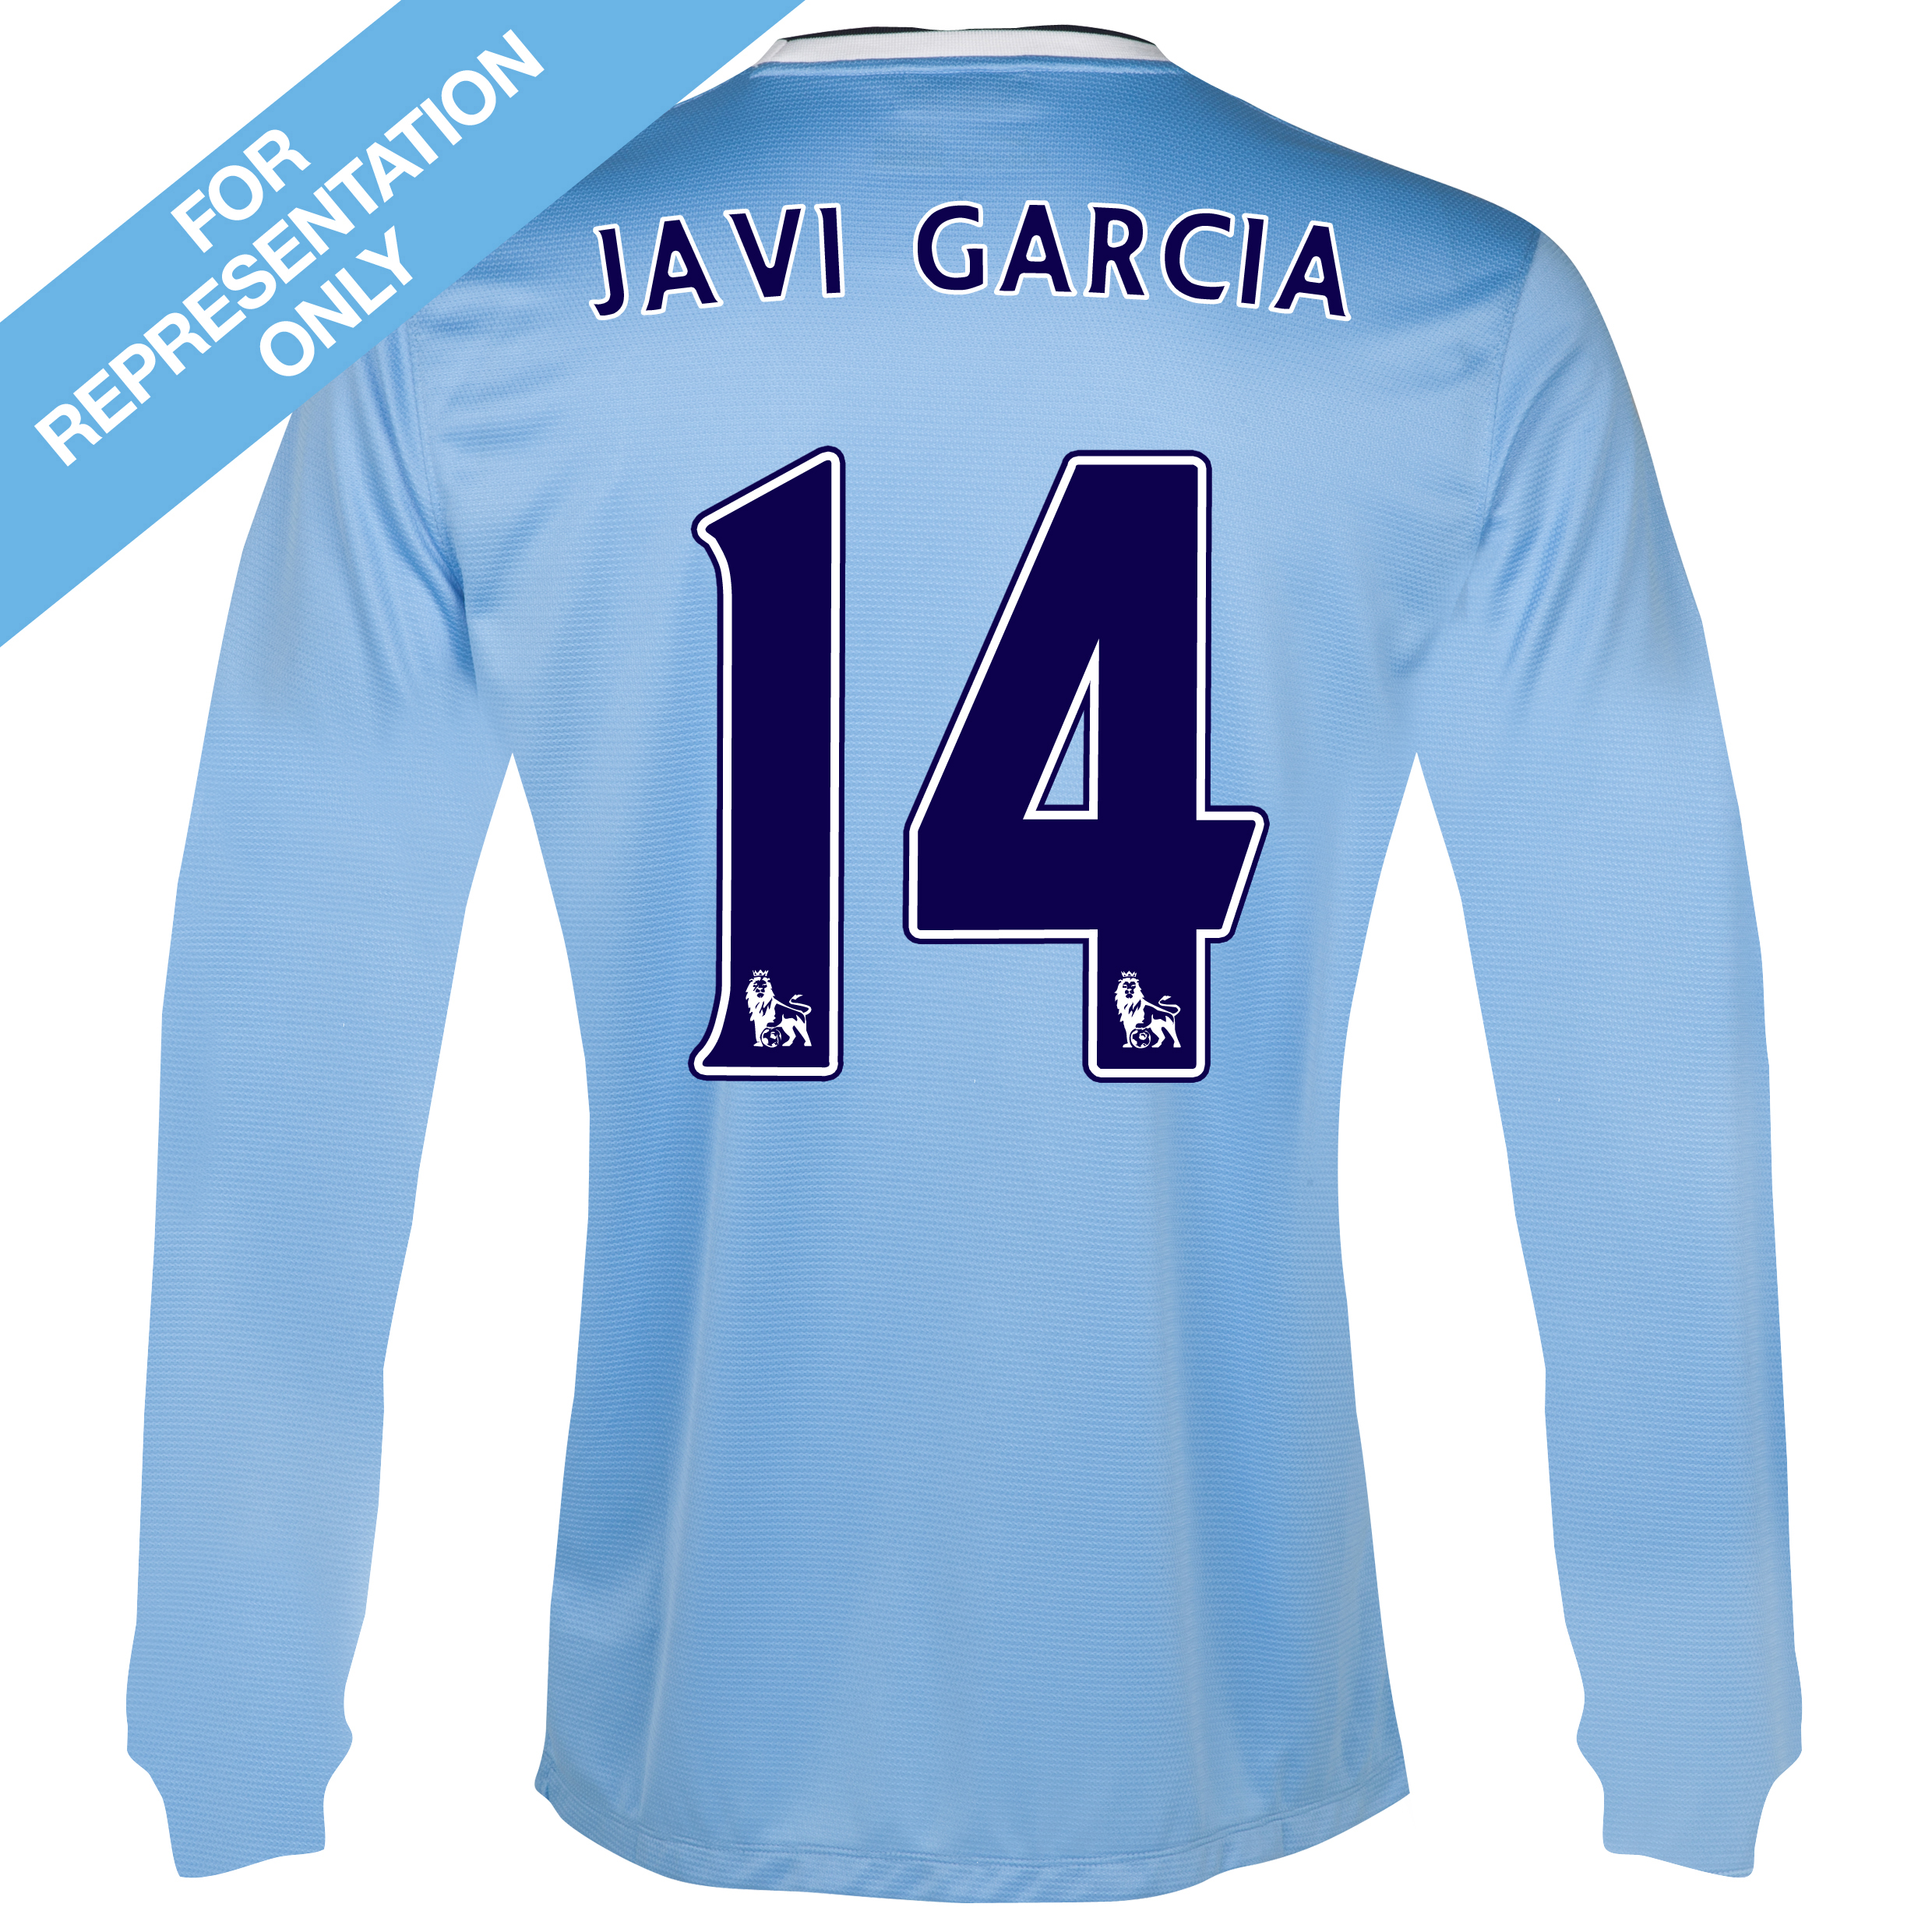 Manchester City Home Shirt 2013/14 - Long Sleeved with Javi Garcia 14 printing